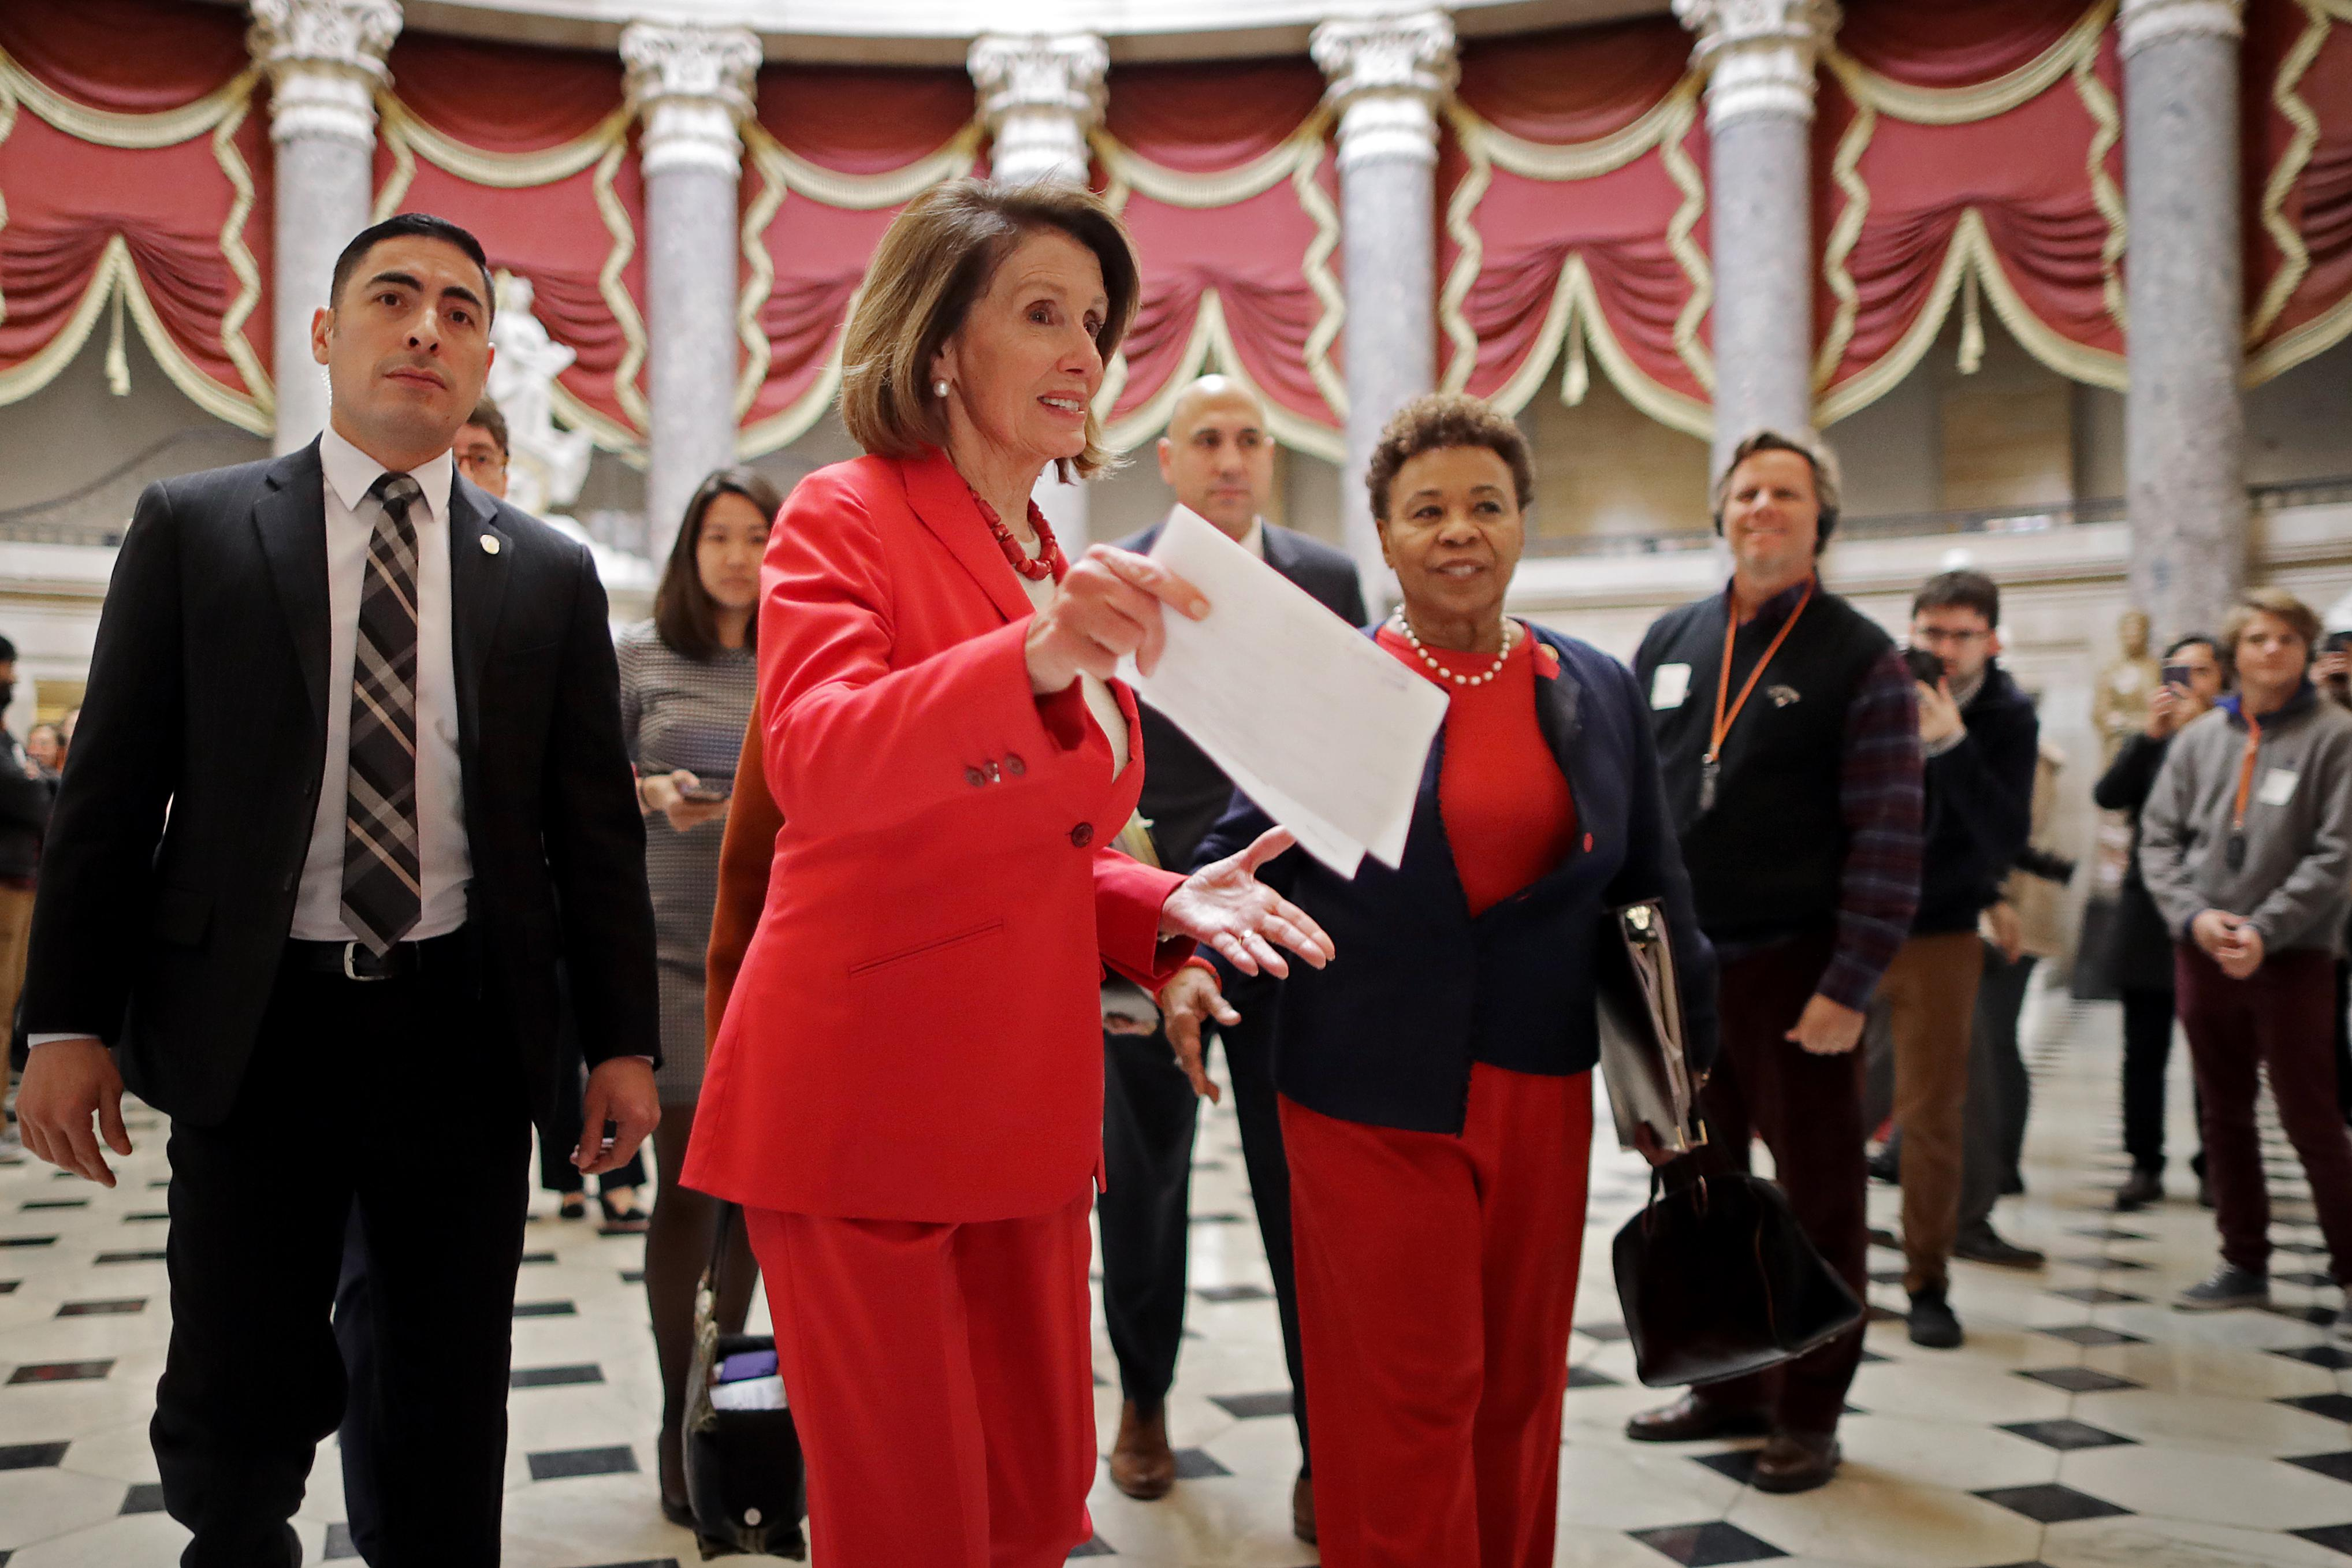 Nancy Pelosi holds a paper in her hand as she walks, followed by a crowd, toward the House floor.